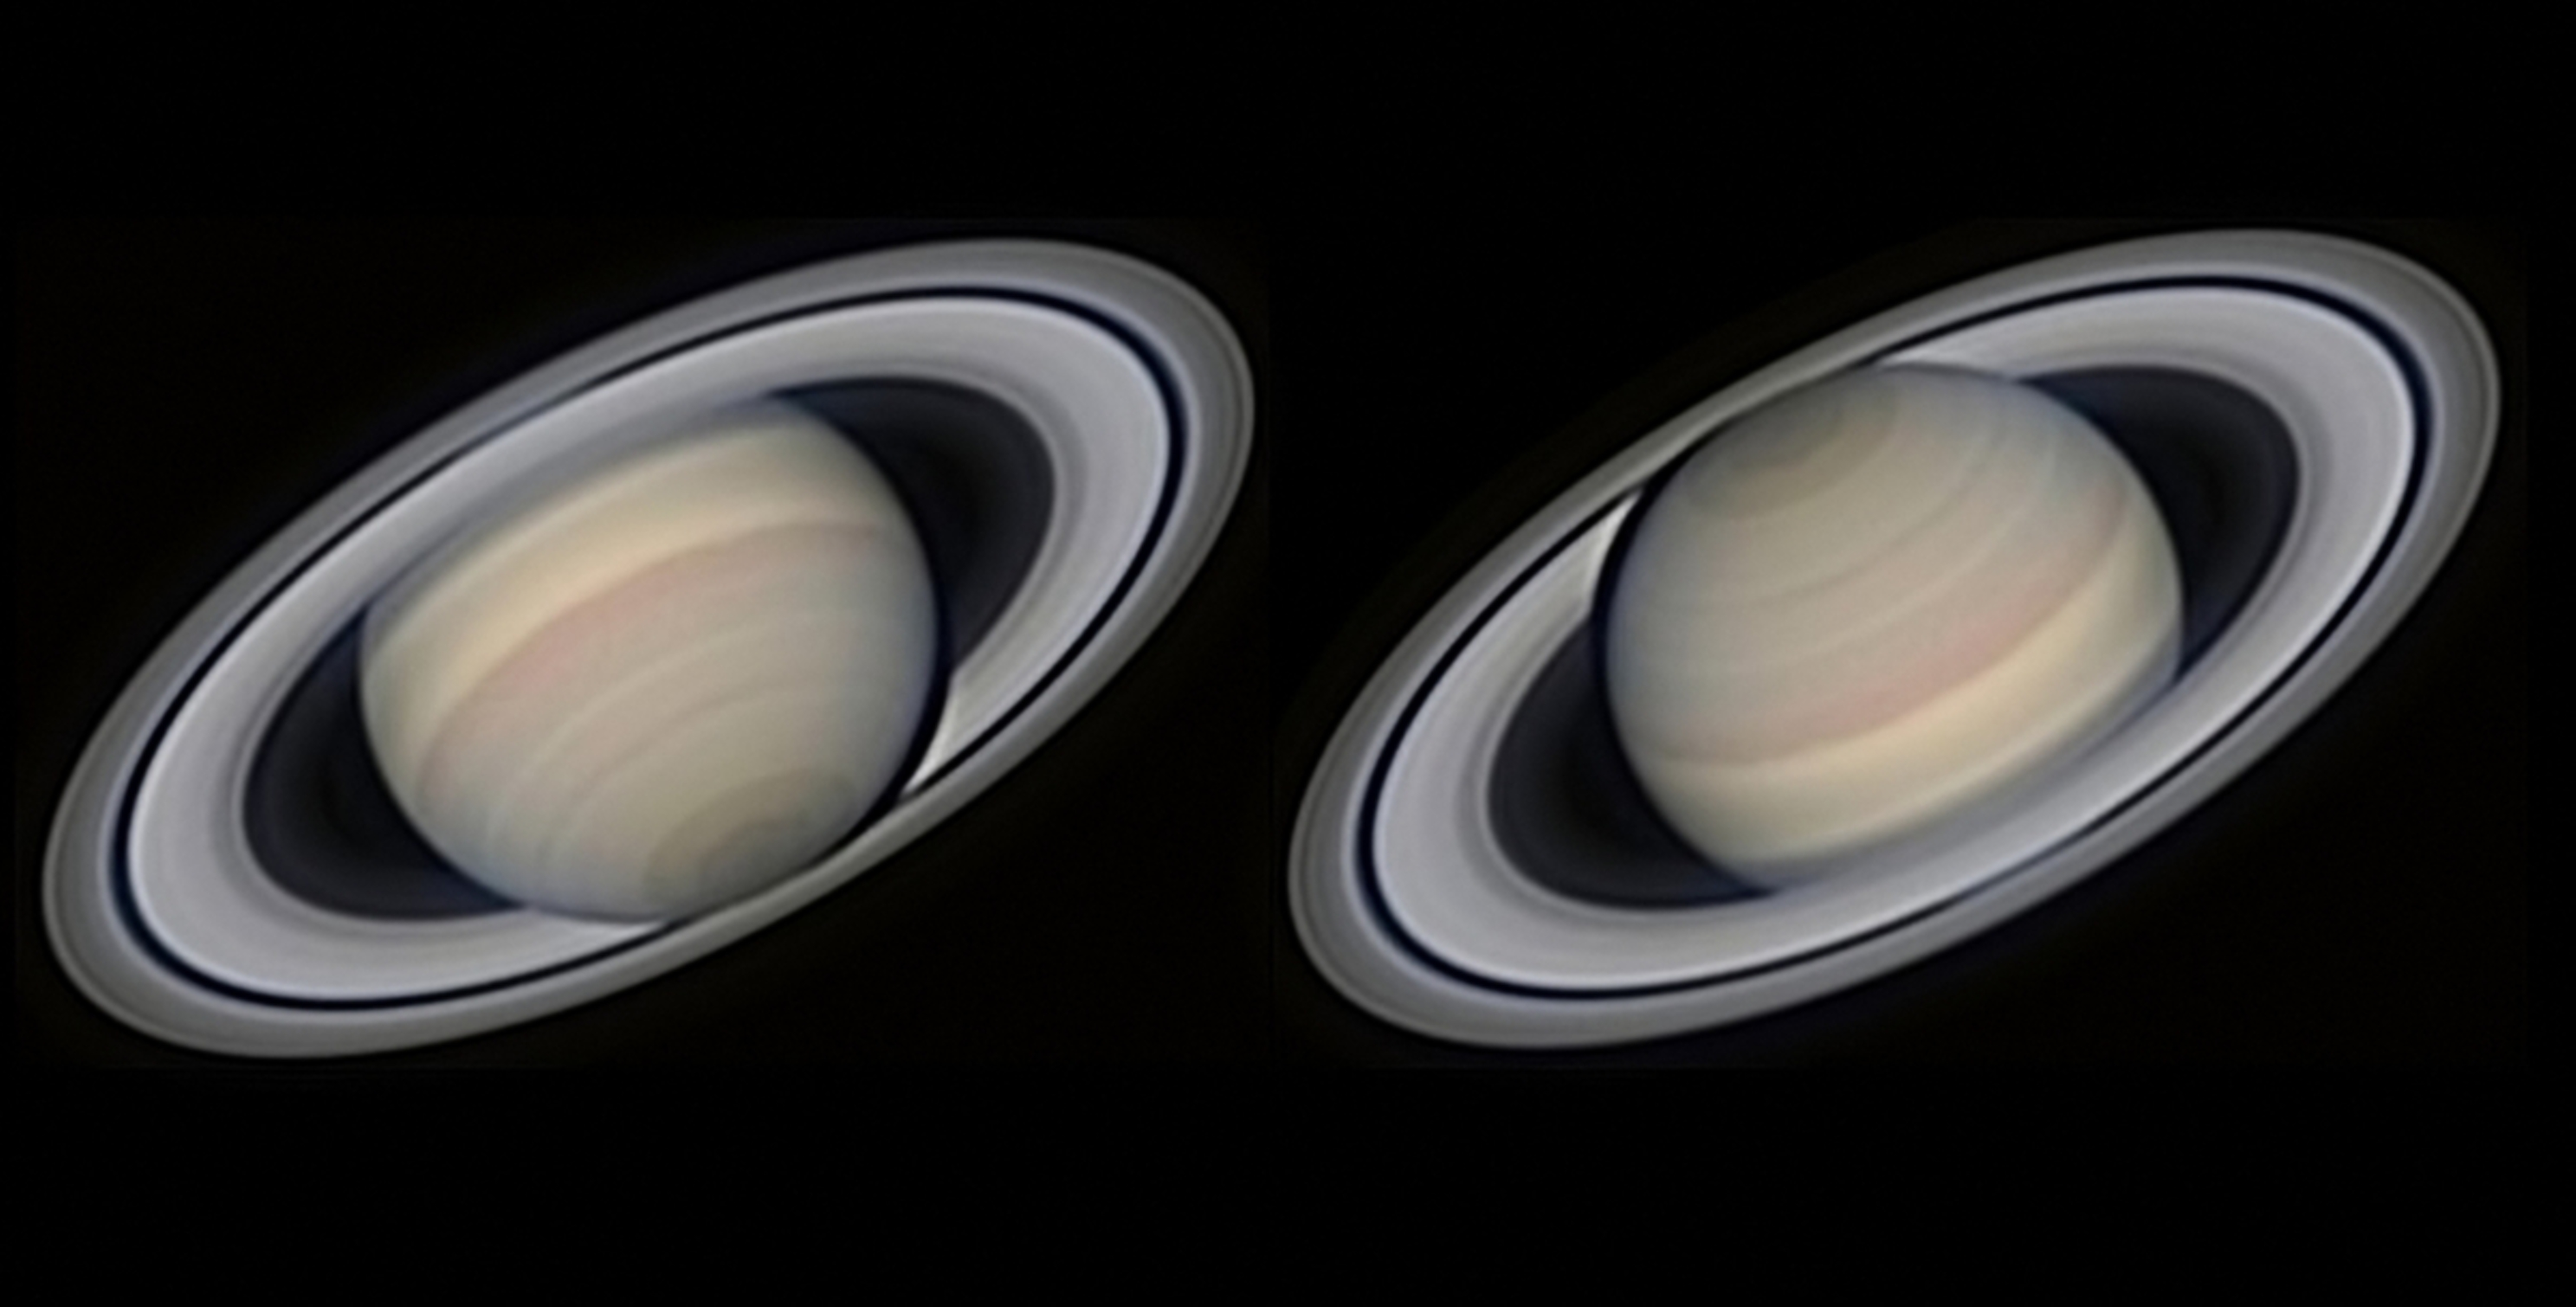 Photographer Avani Soares stacked 4,000 frames to create these stunning images of Saturn, our Solar System's second largest planet.